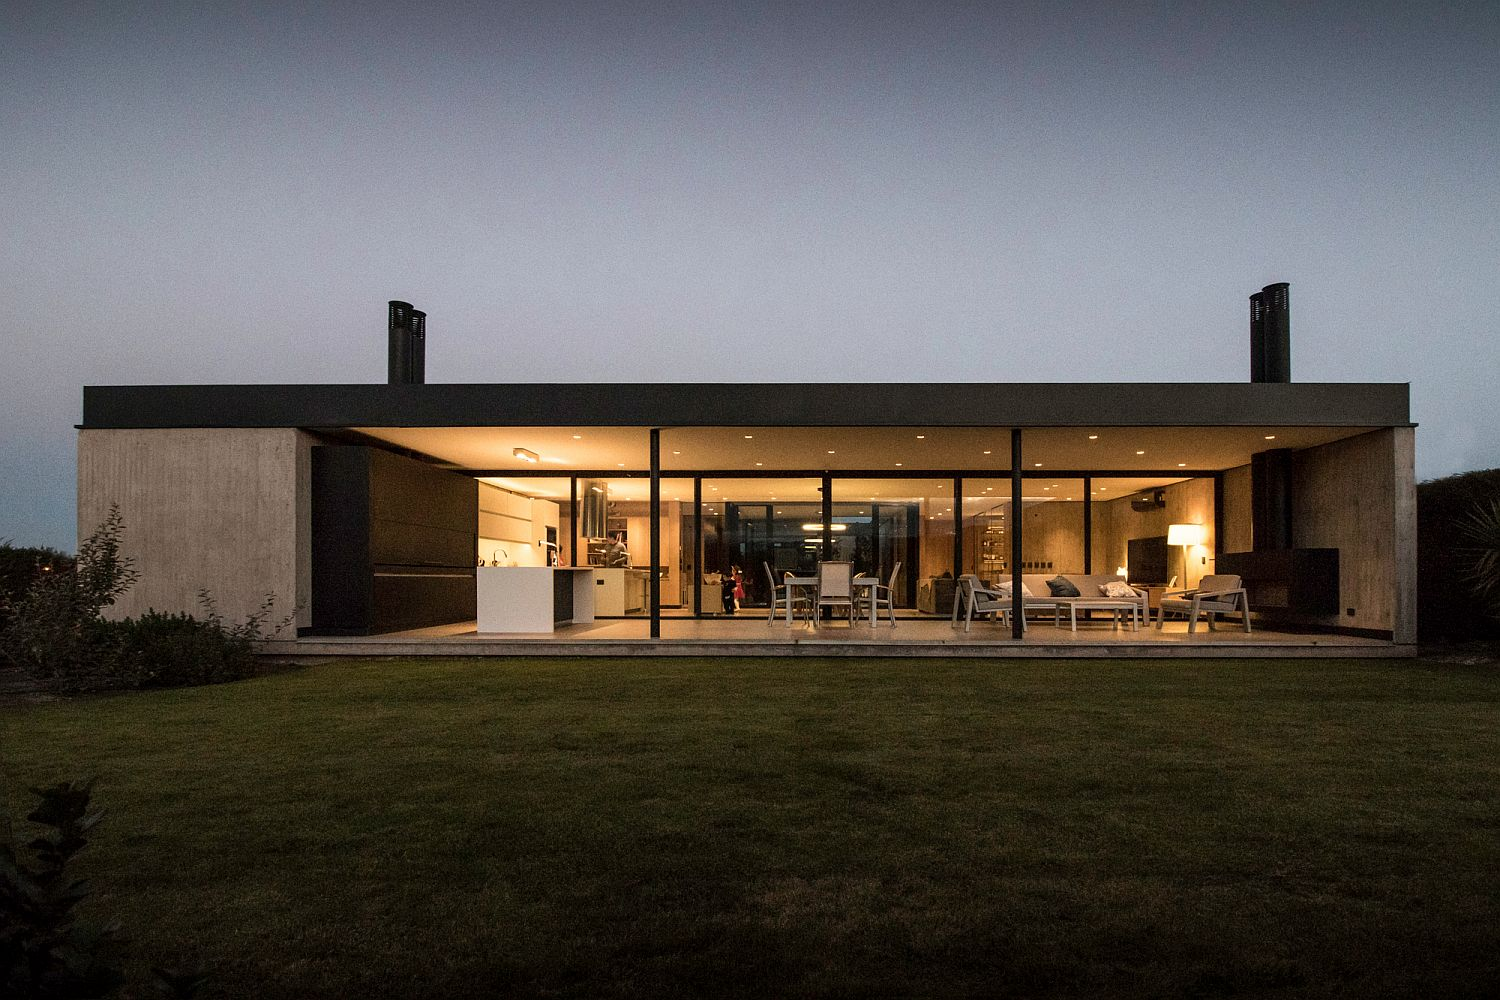 Rear facade of the home opens up towards the outdoors